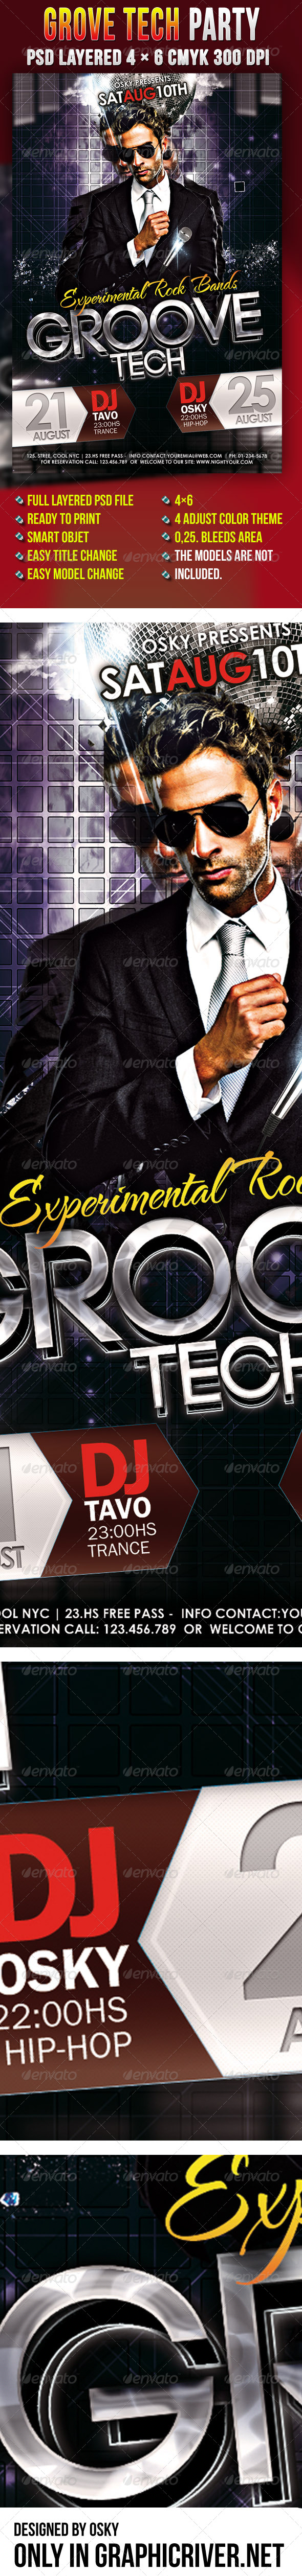 Grove Tech Party - Clubs & Parties Events